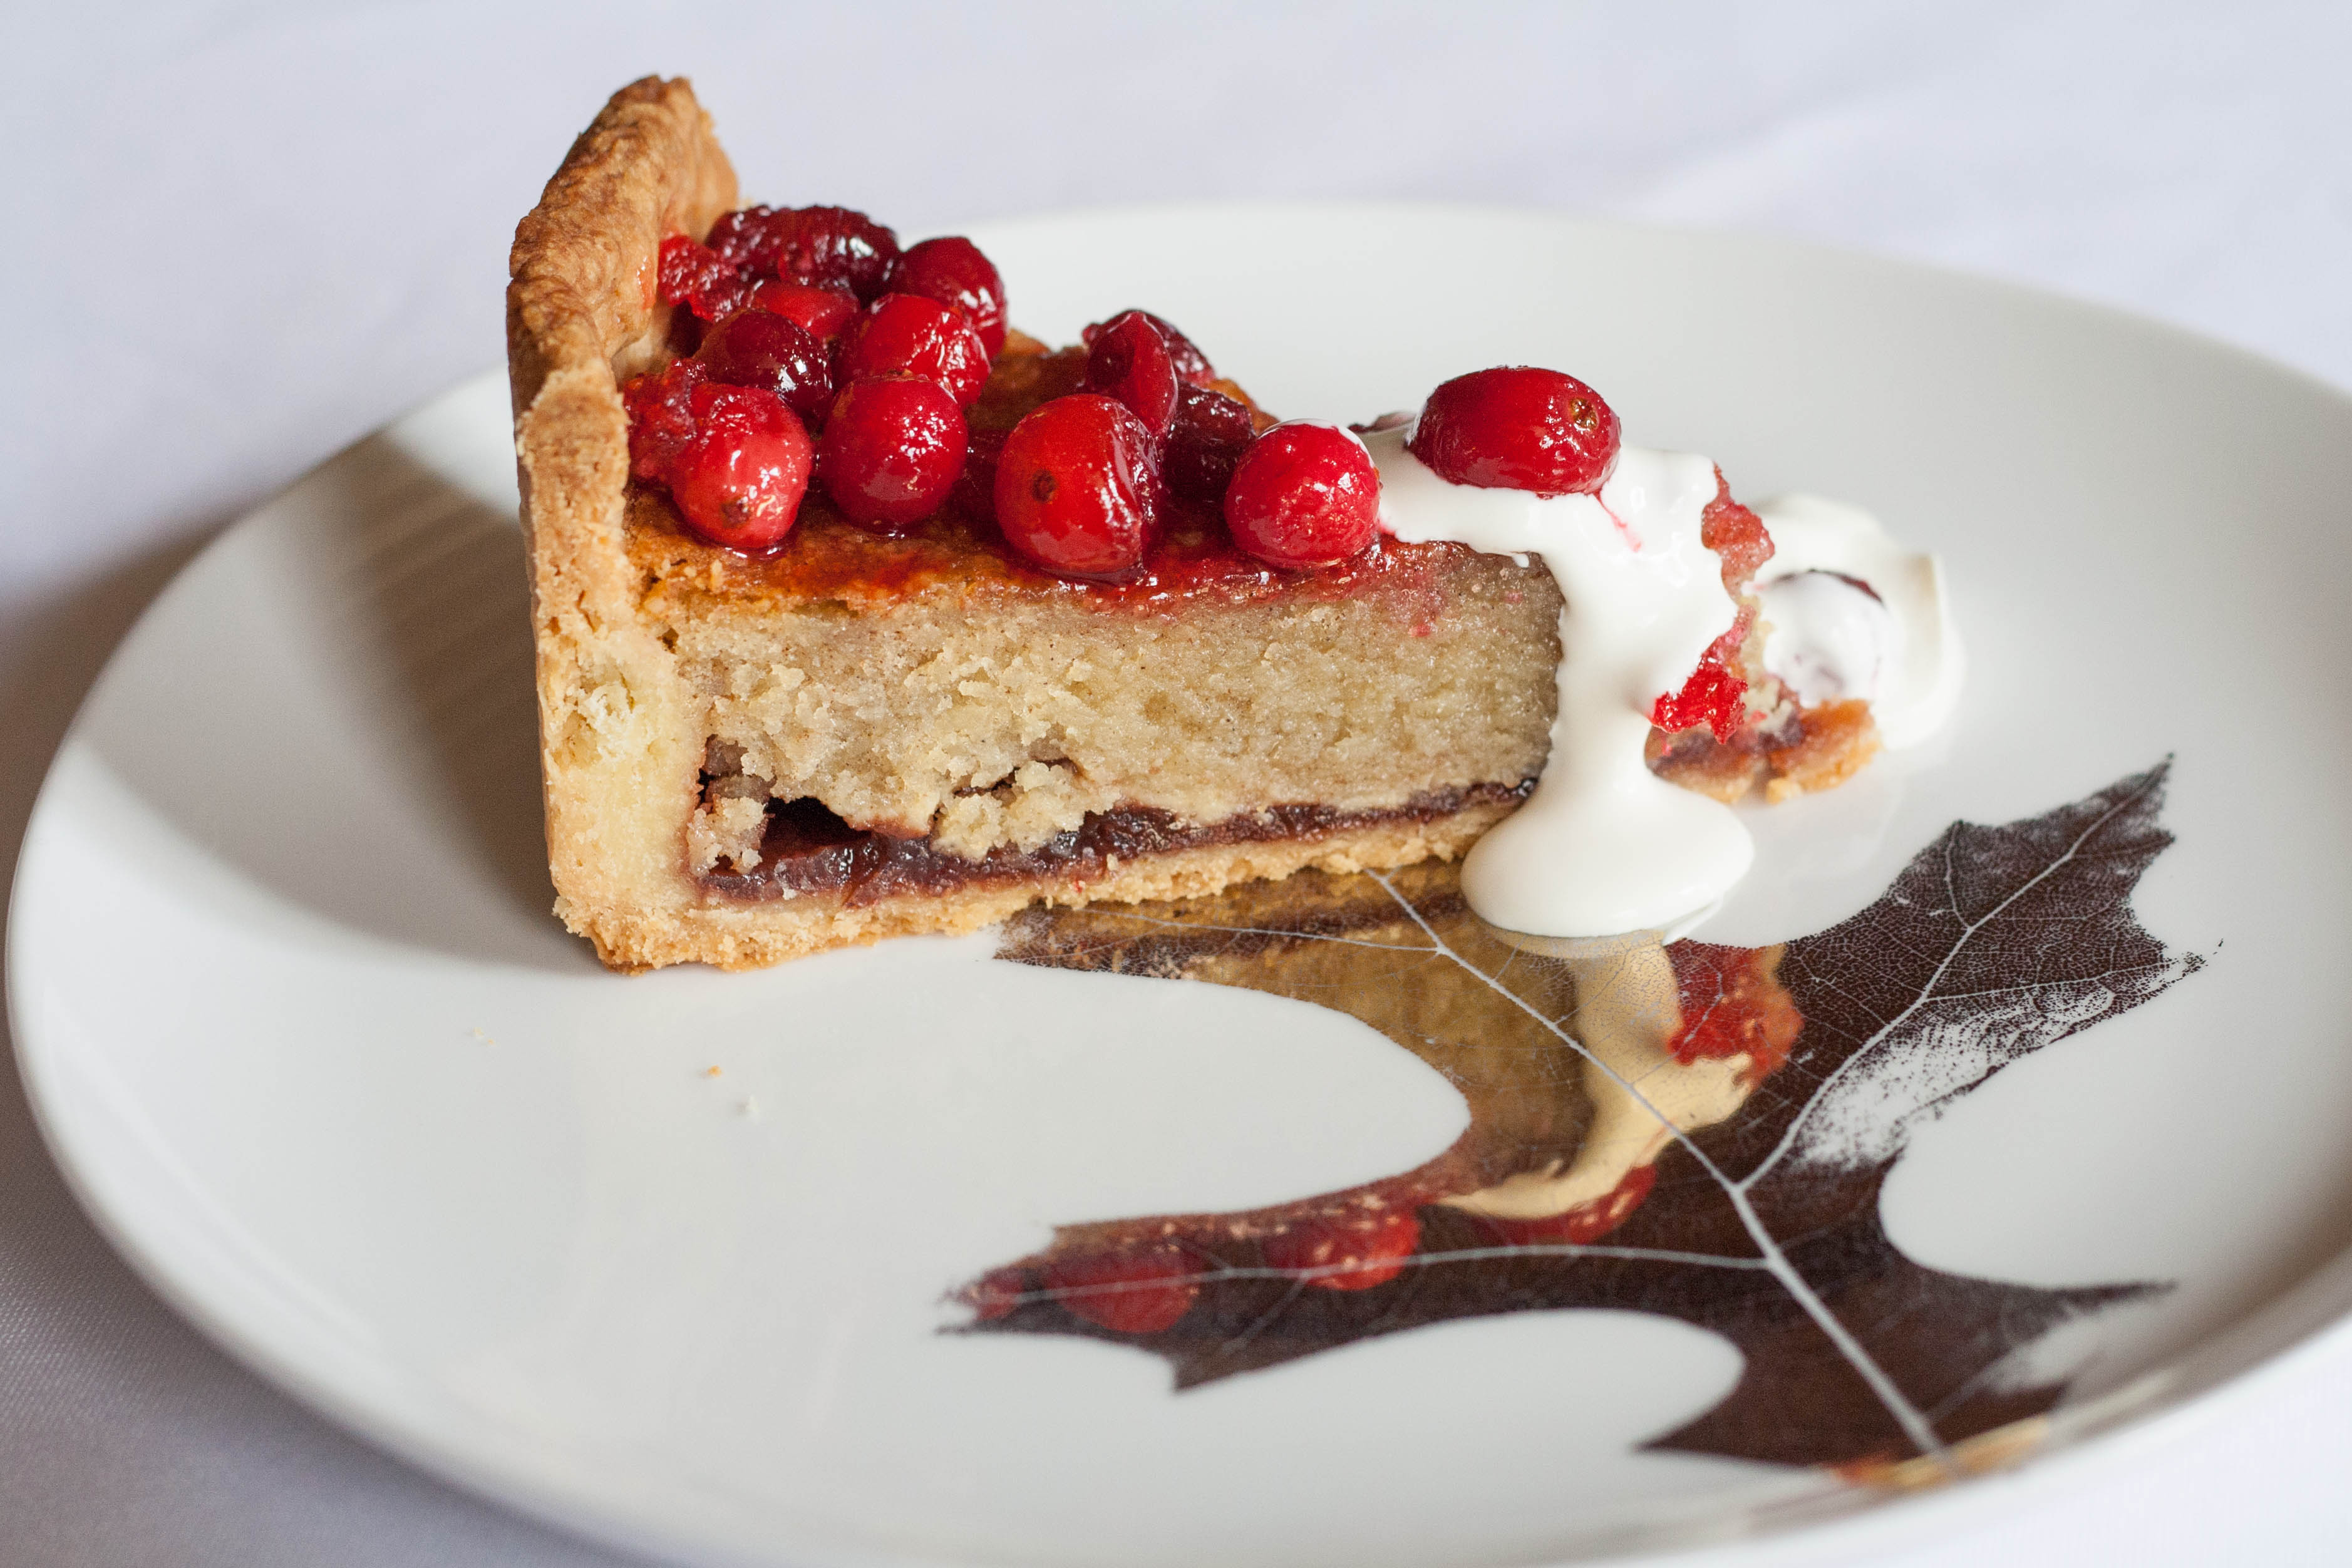 Cranberry Almond Lingonberry Torte with creme fraiche